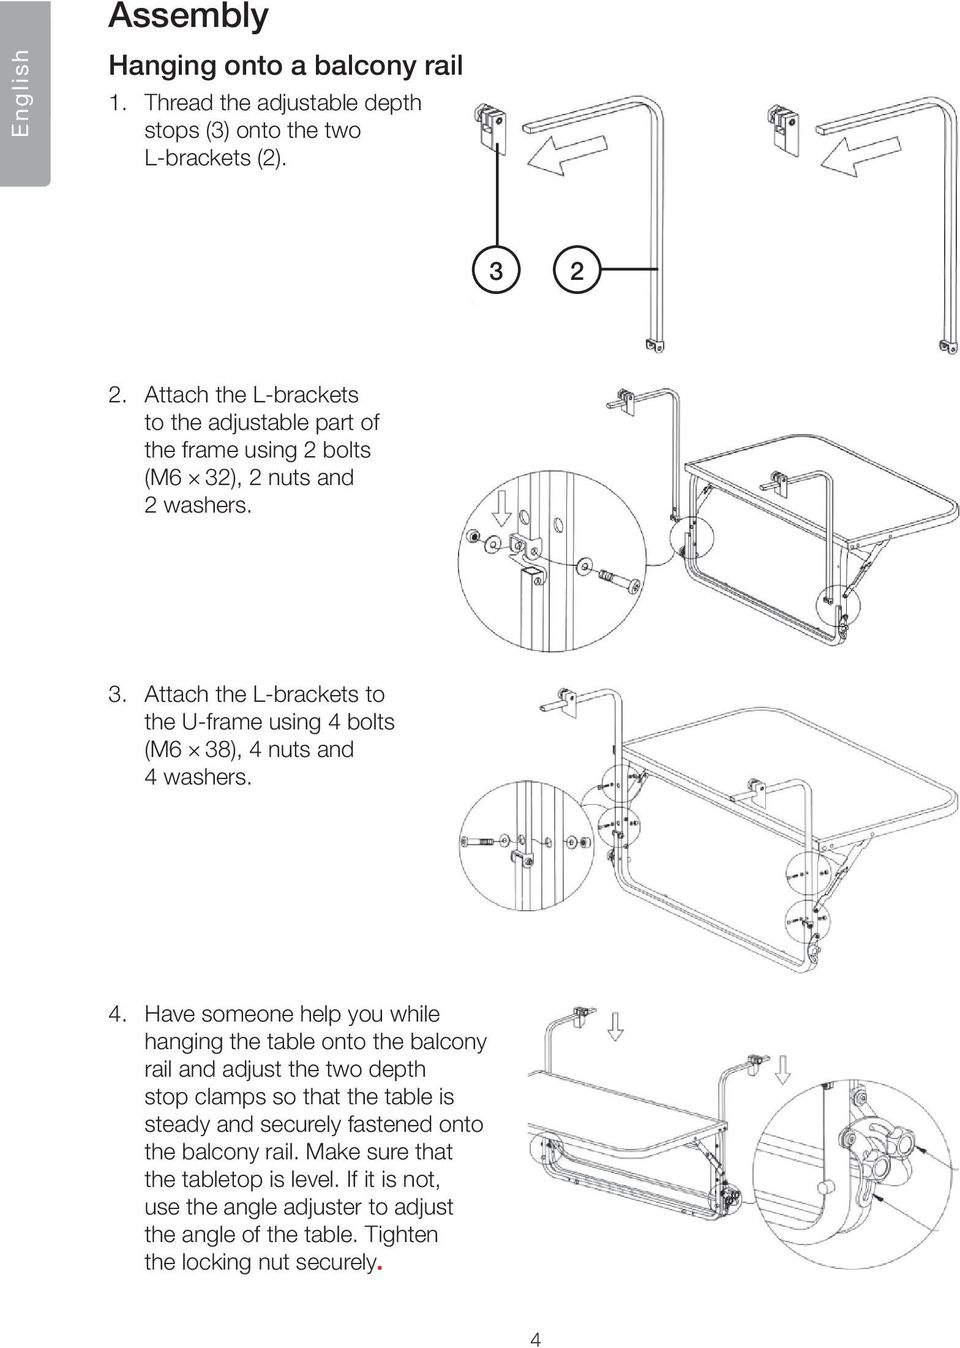 ), 2 nuts and 2 washers. 3. Attach the L-brackets to the U-frame using 4